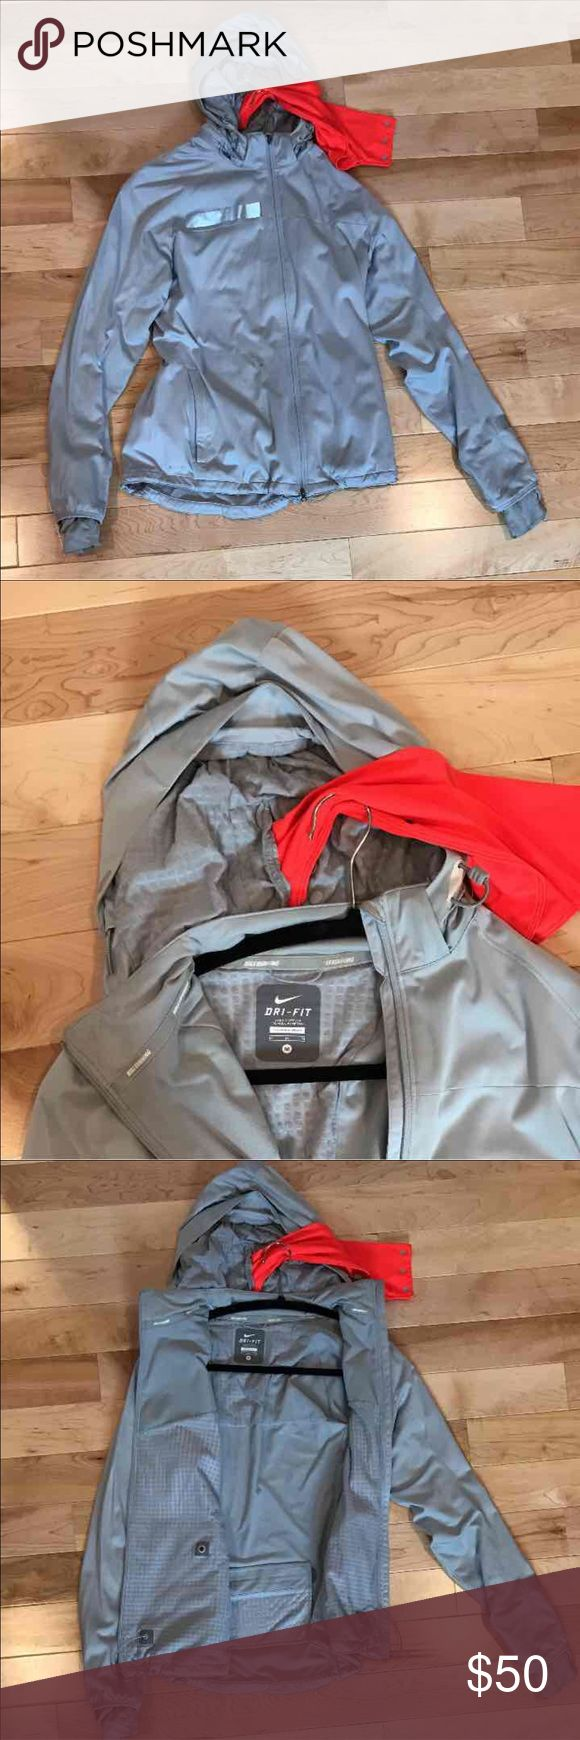 Nike Running Jacket Nike women's running jacket. Color is a Grey with a blue undertone/Silver. The reflective stripes are silver. This jacket is for running in very cold weather. It is a little thicker than your usual running jacket. Nike Jackets & Coats